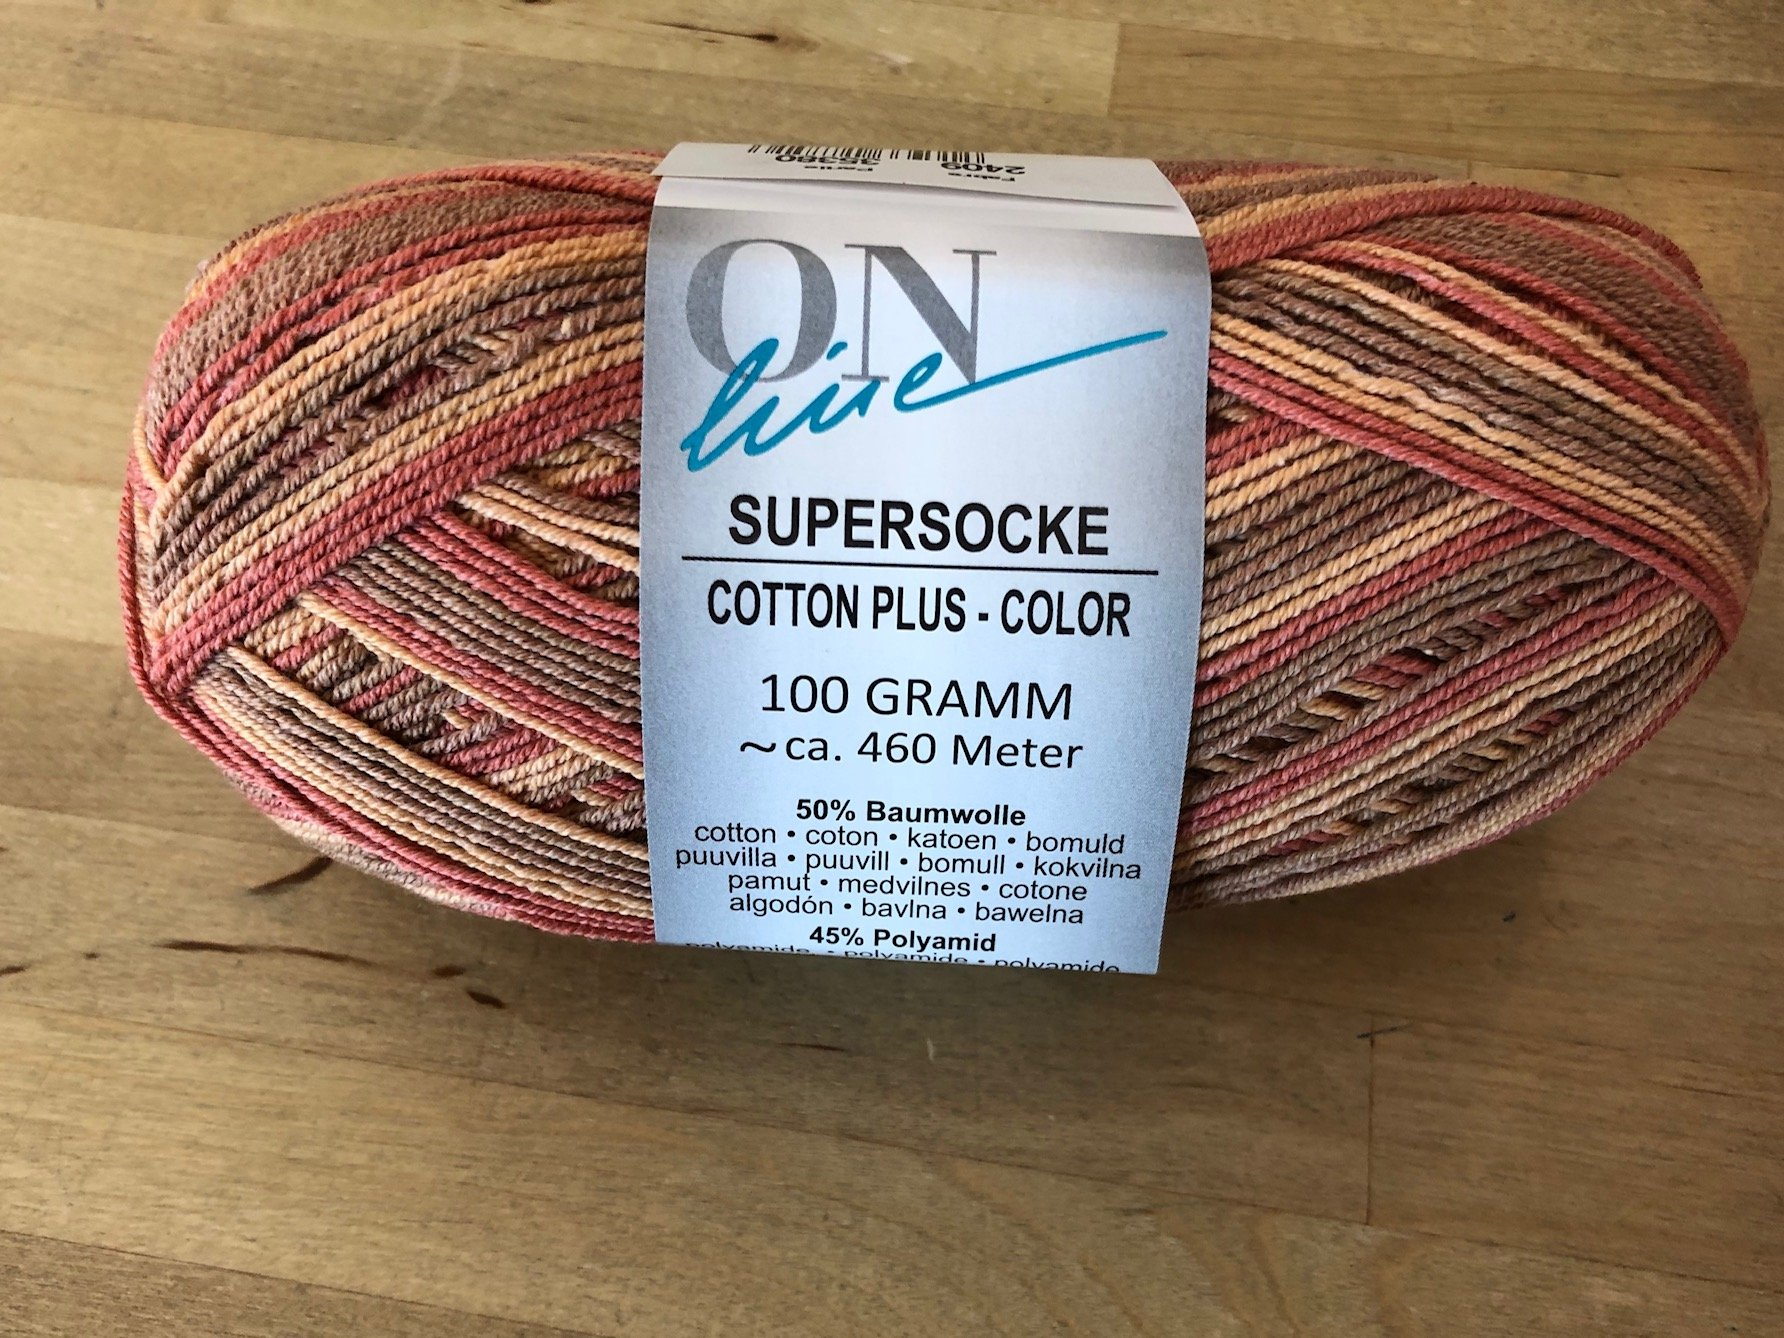 Supersocke 2409 Cotton Plus Color sock yarn